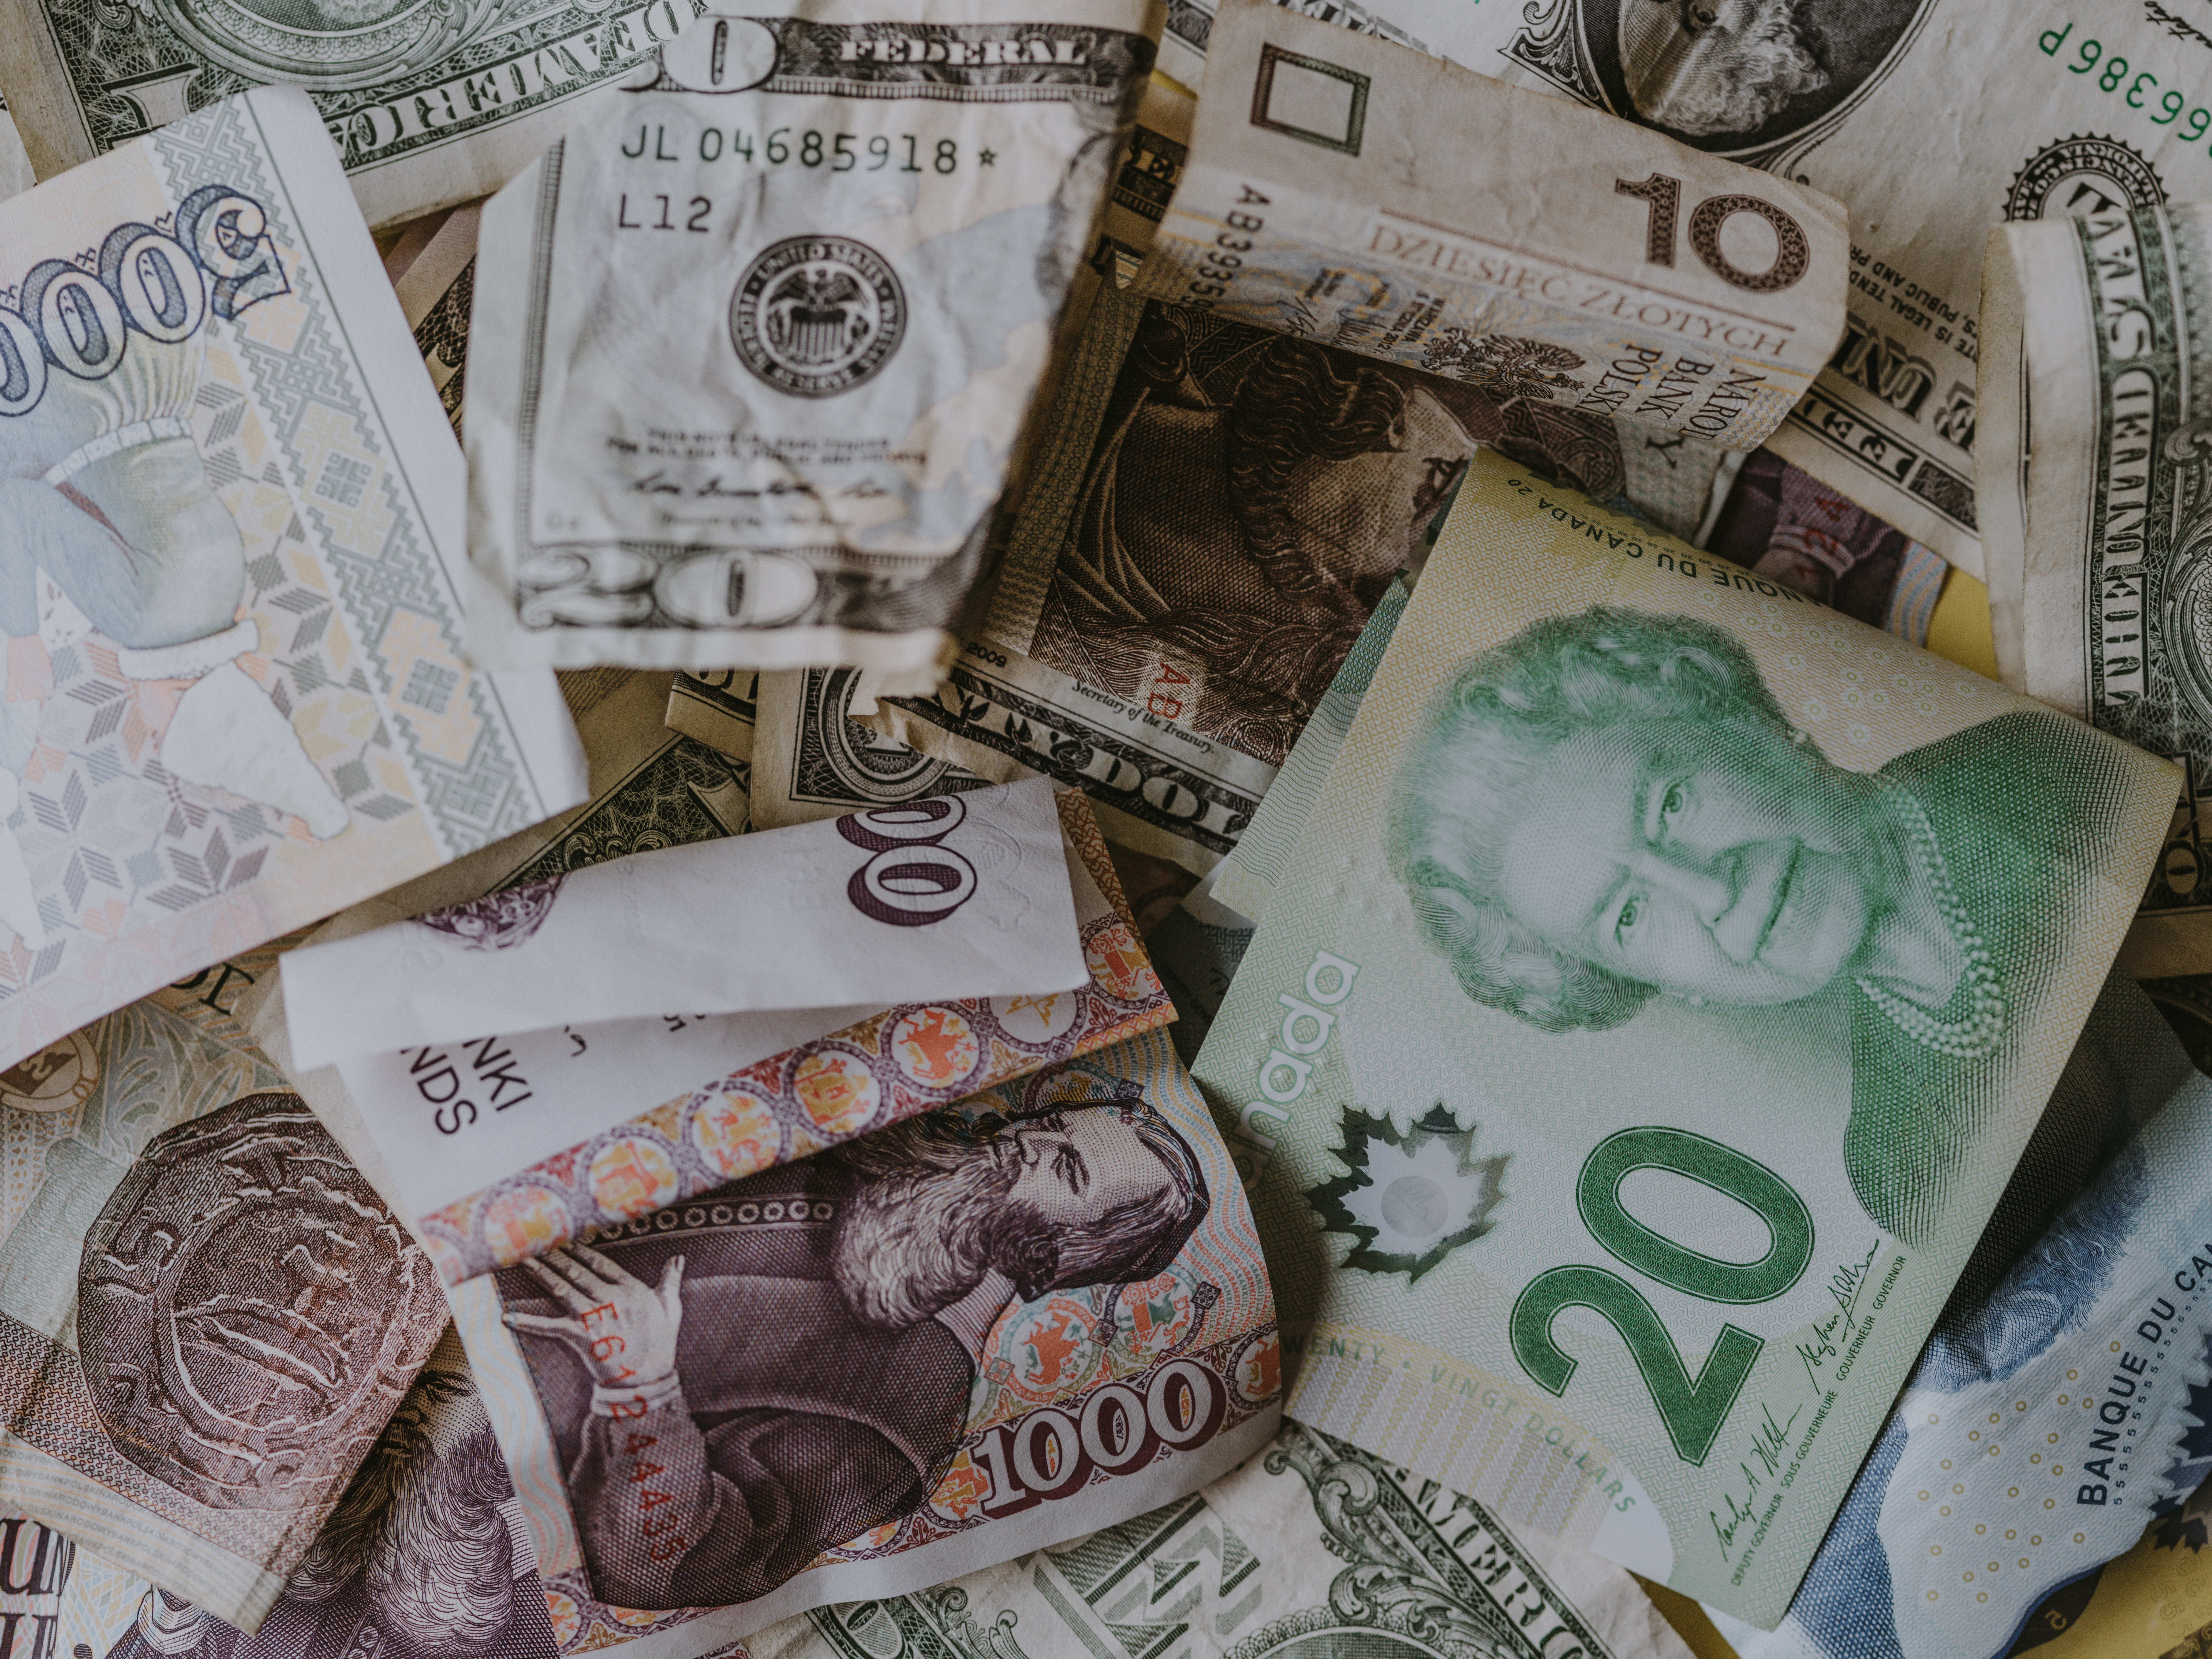 image of currency/money from various countries